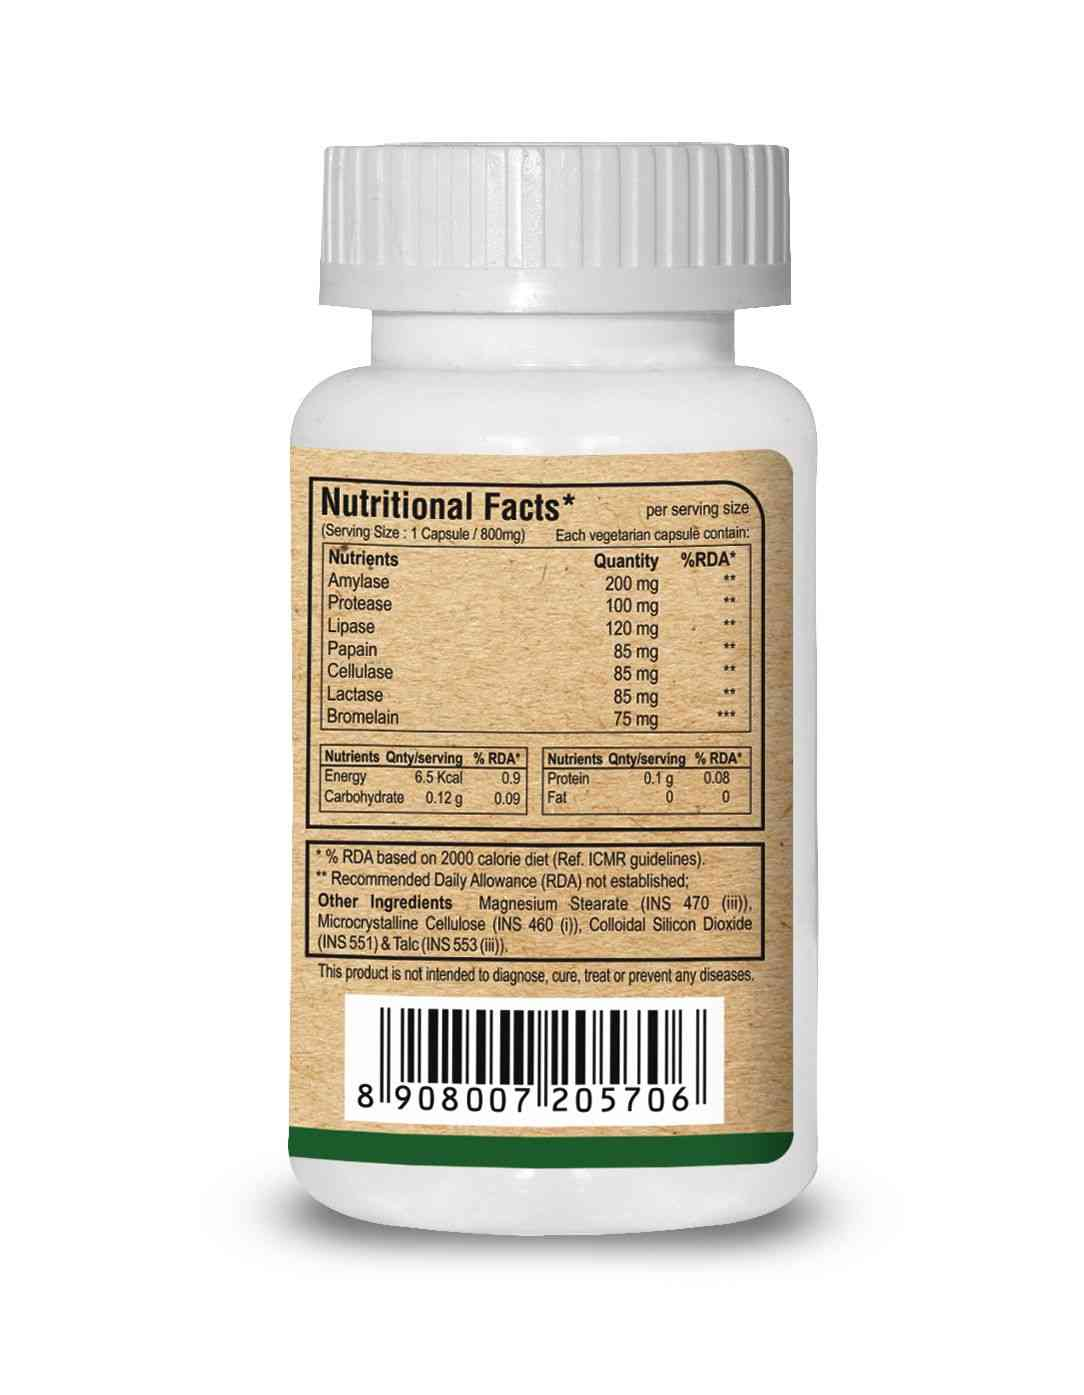 Pure Nutrition Digestive Enzymes (multi-enzyme Blend) - 60 Caps